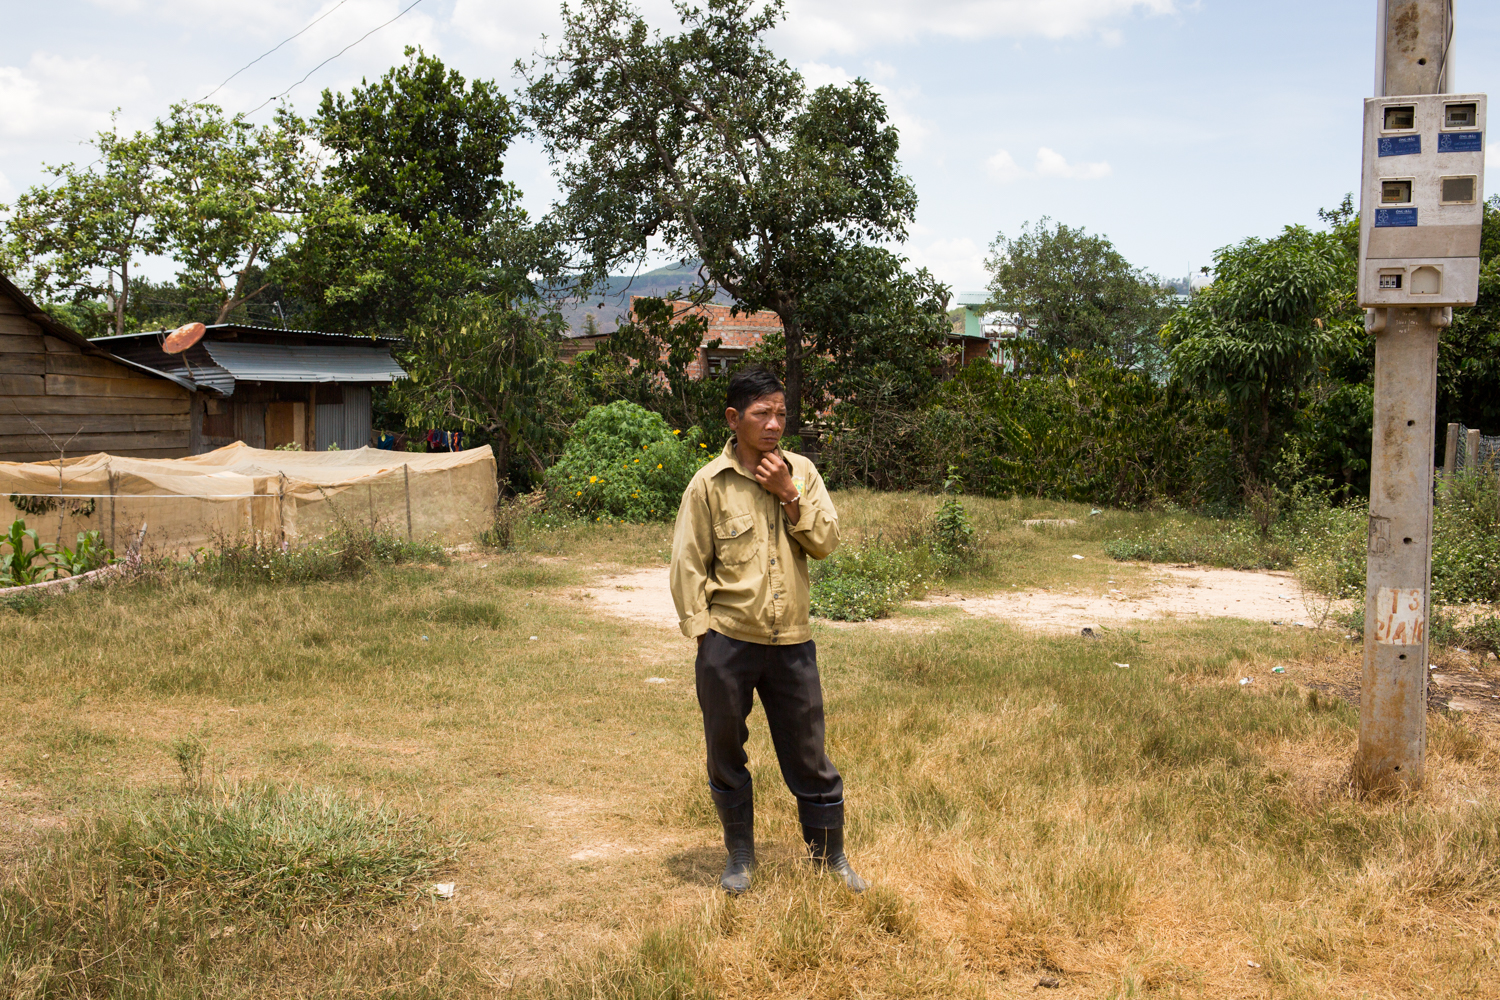 In a small village on the outskirts of Dalat, a man stands in a vacant housing lot.